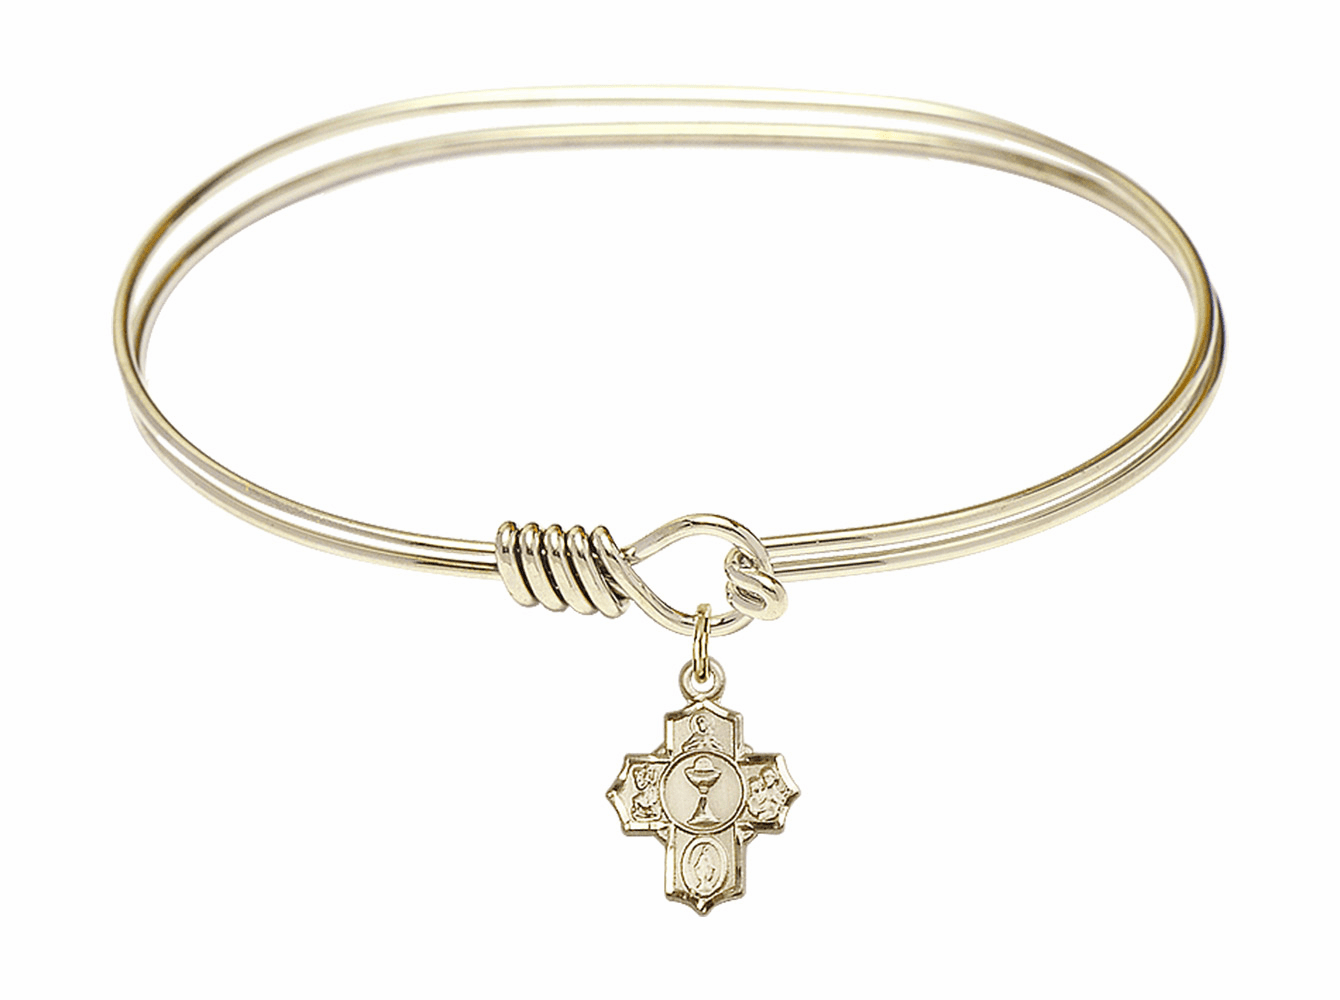 Round Eye Hook Bangle Bracelet w/5-Way Communion Cross Charm by Bliss Mfg